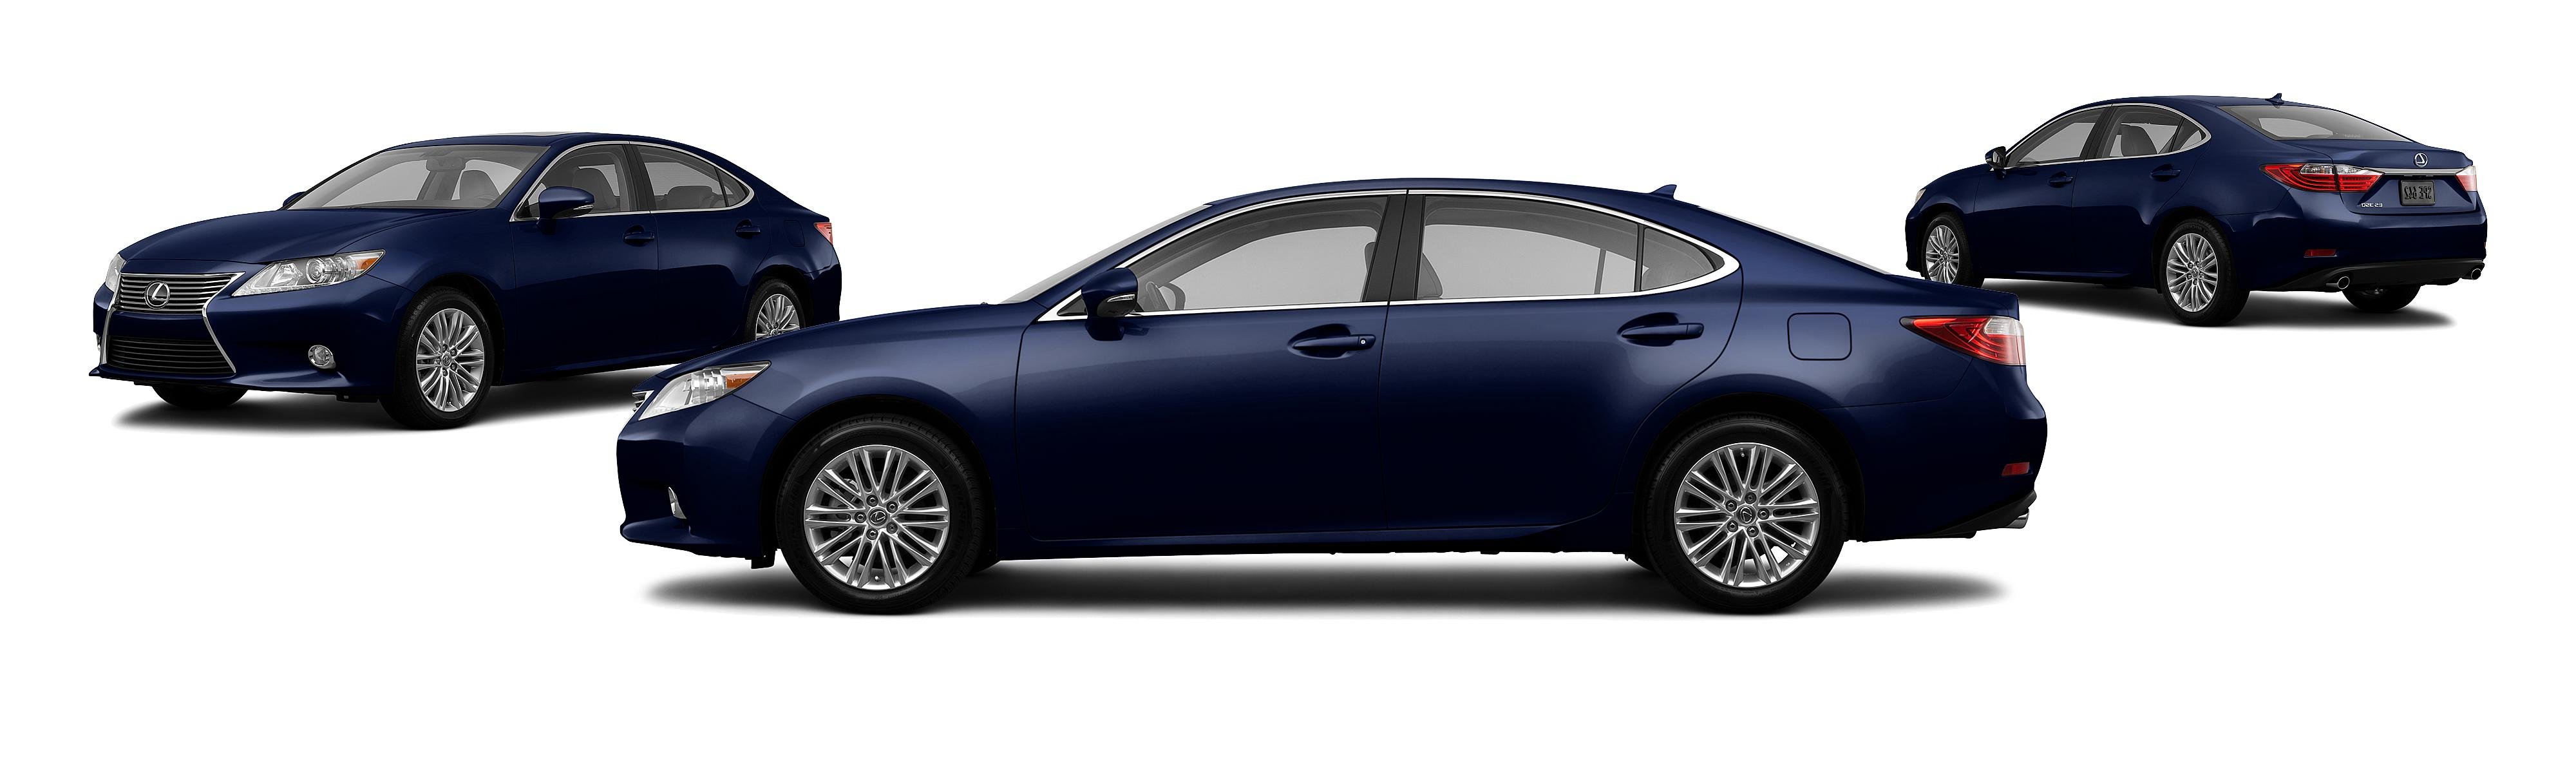 2013 Lexus ES 350 4dr Sedan Research GrooveCar